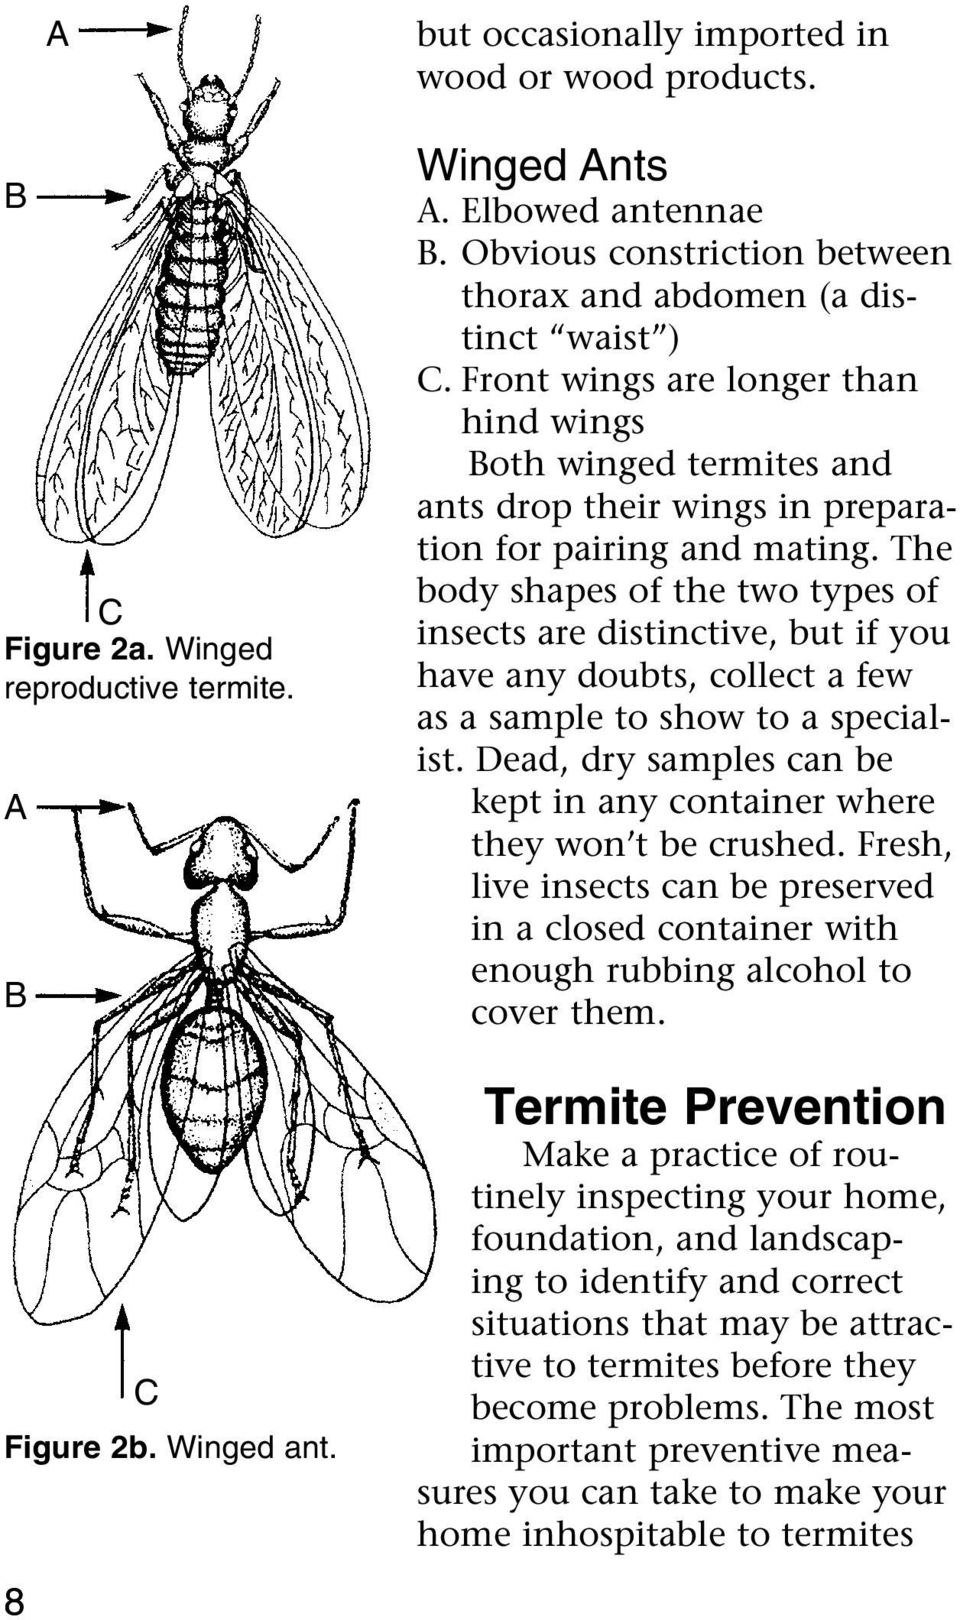 The body shapes of the two types of insects are distinctive, but if you have any doubts, collect a few as a sample to show to a specialist.